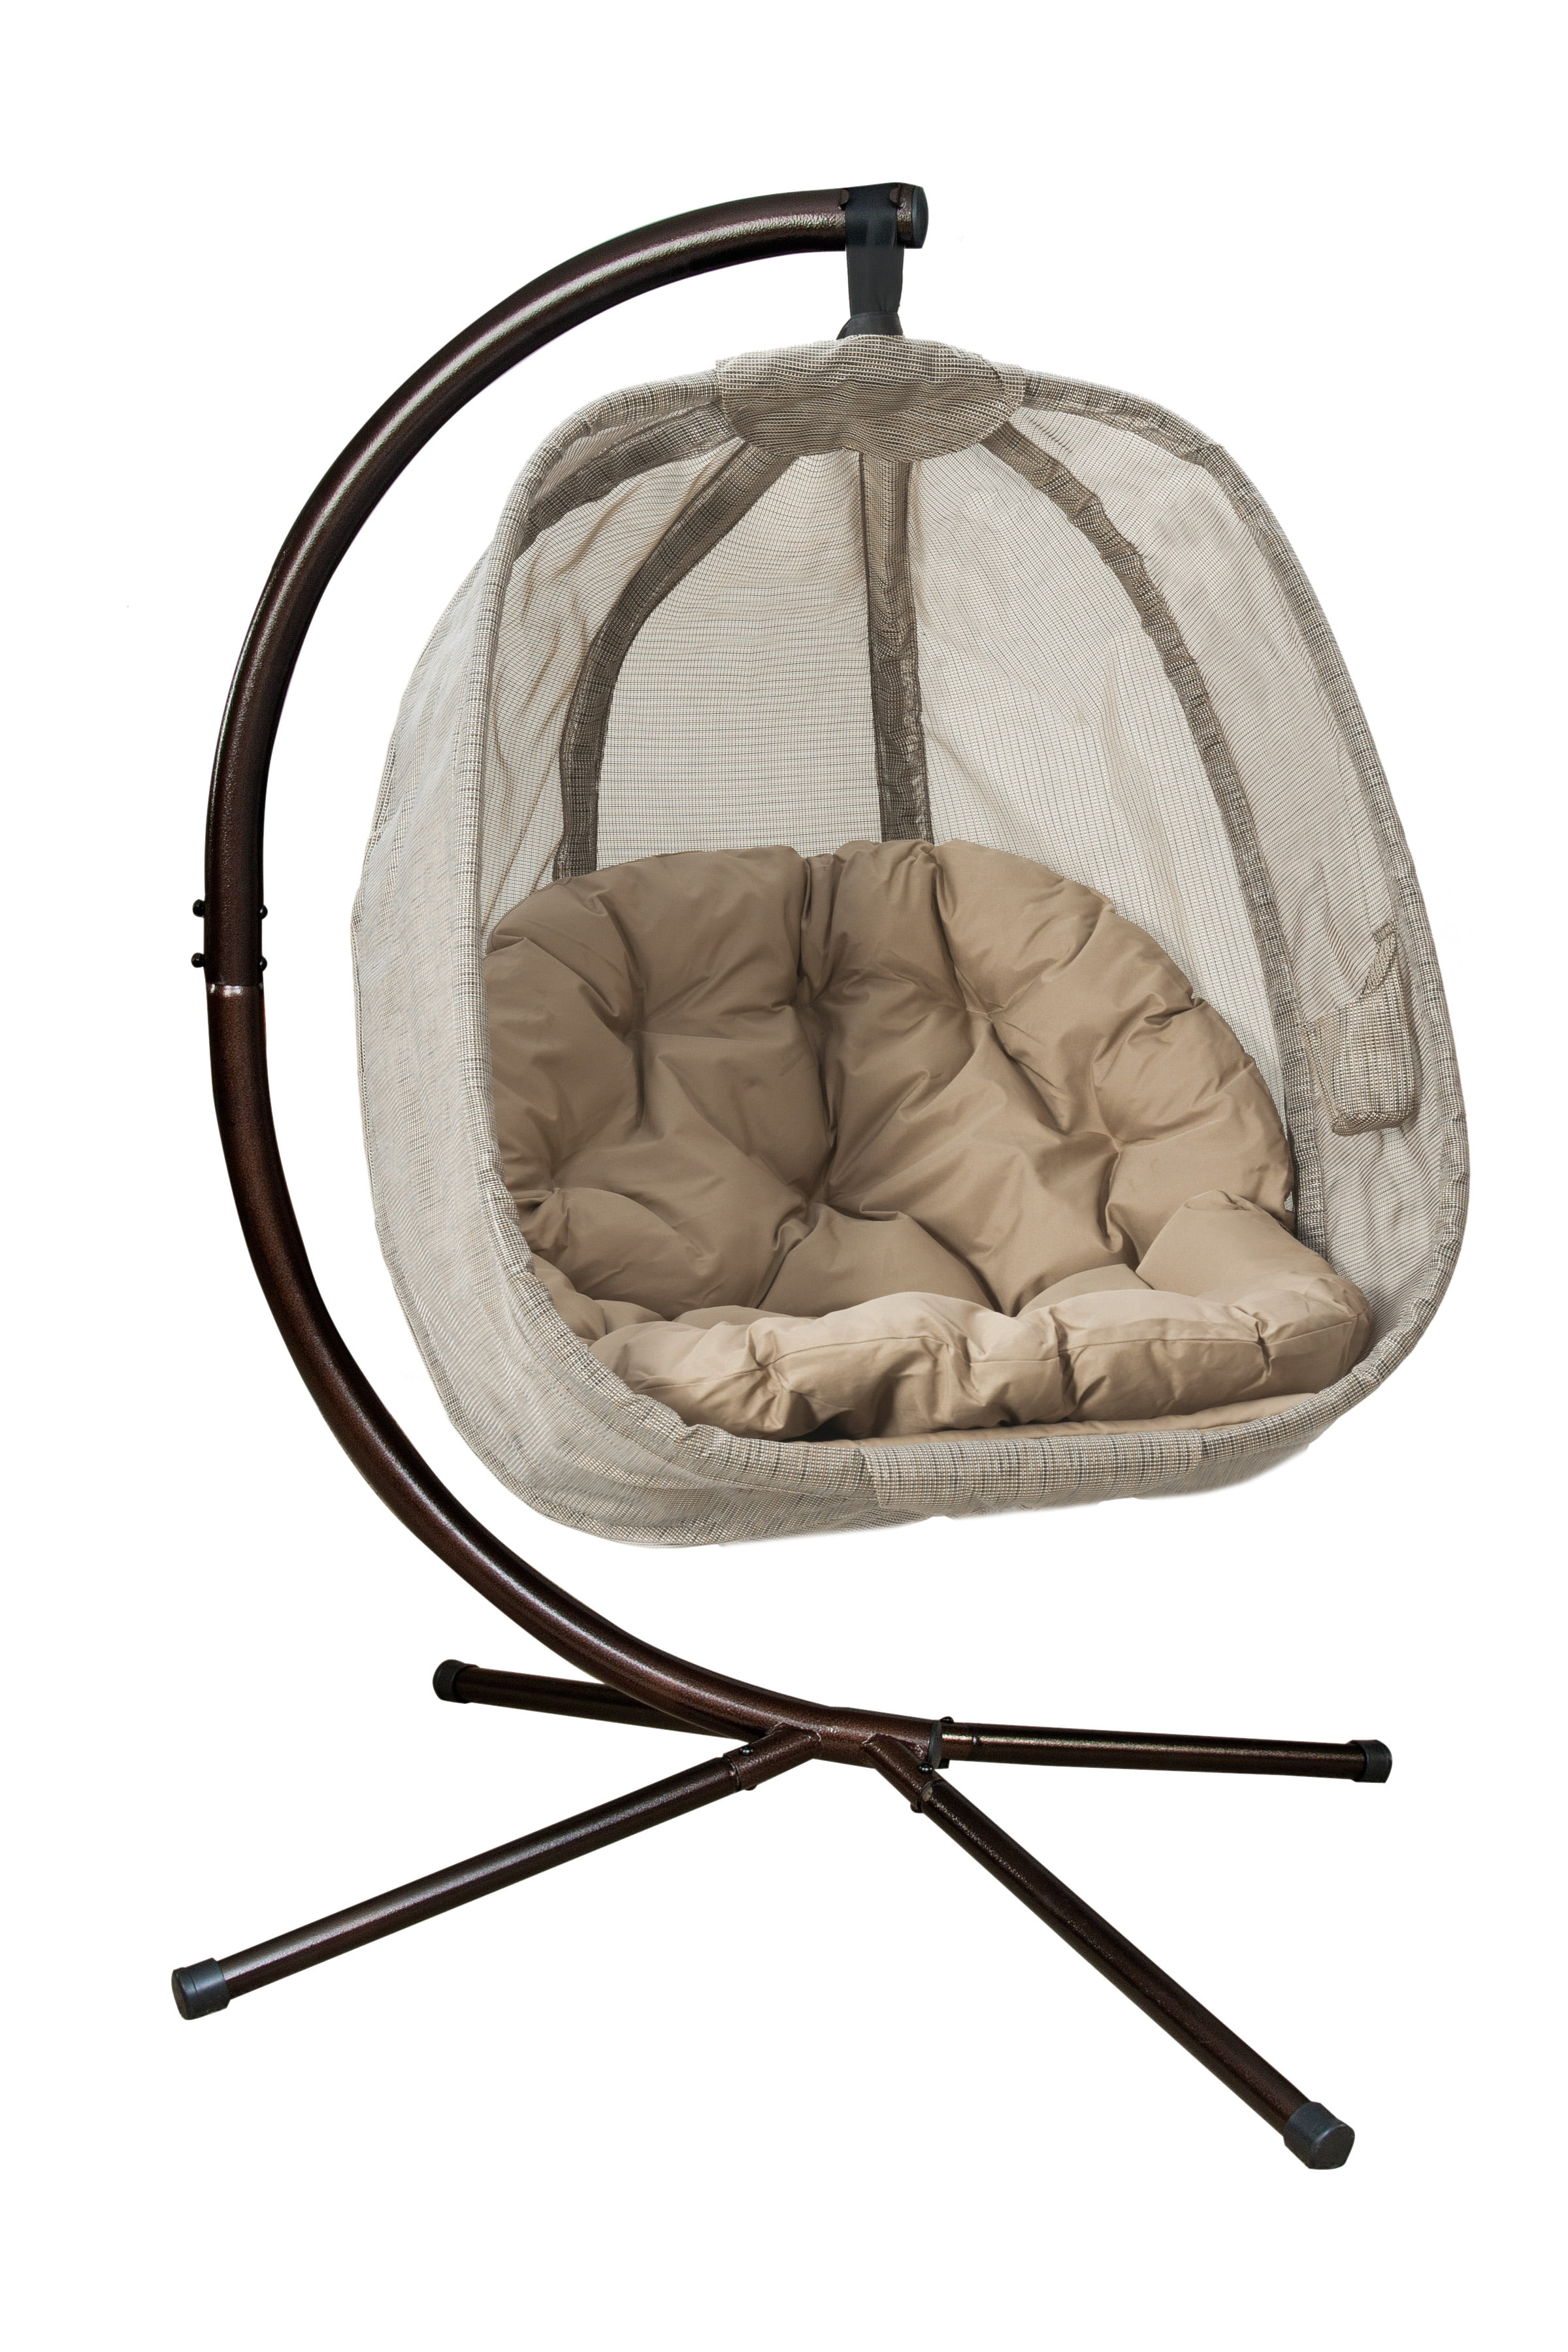 Affordable Egg Chair Flowerhouse Hanging Egg Chair Walmart